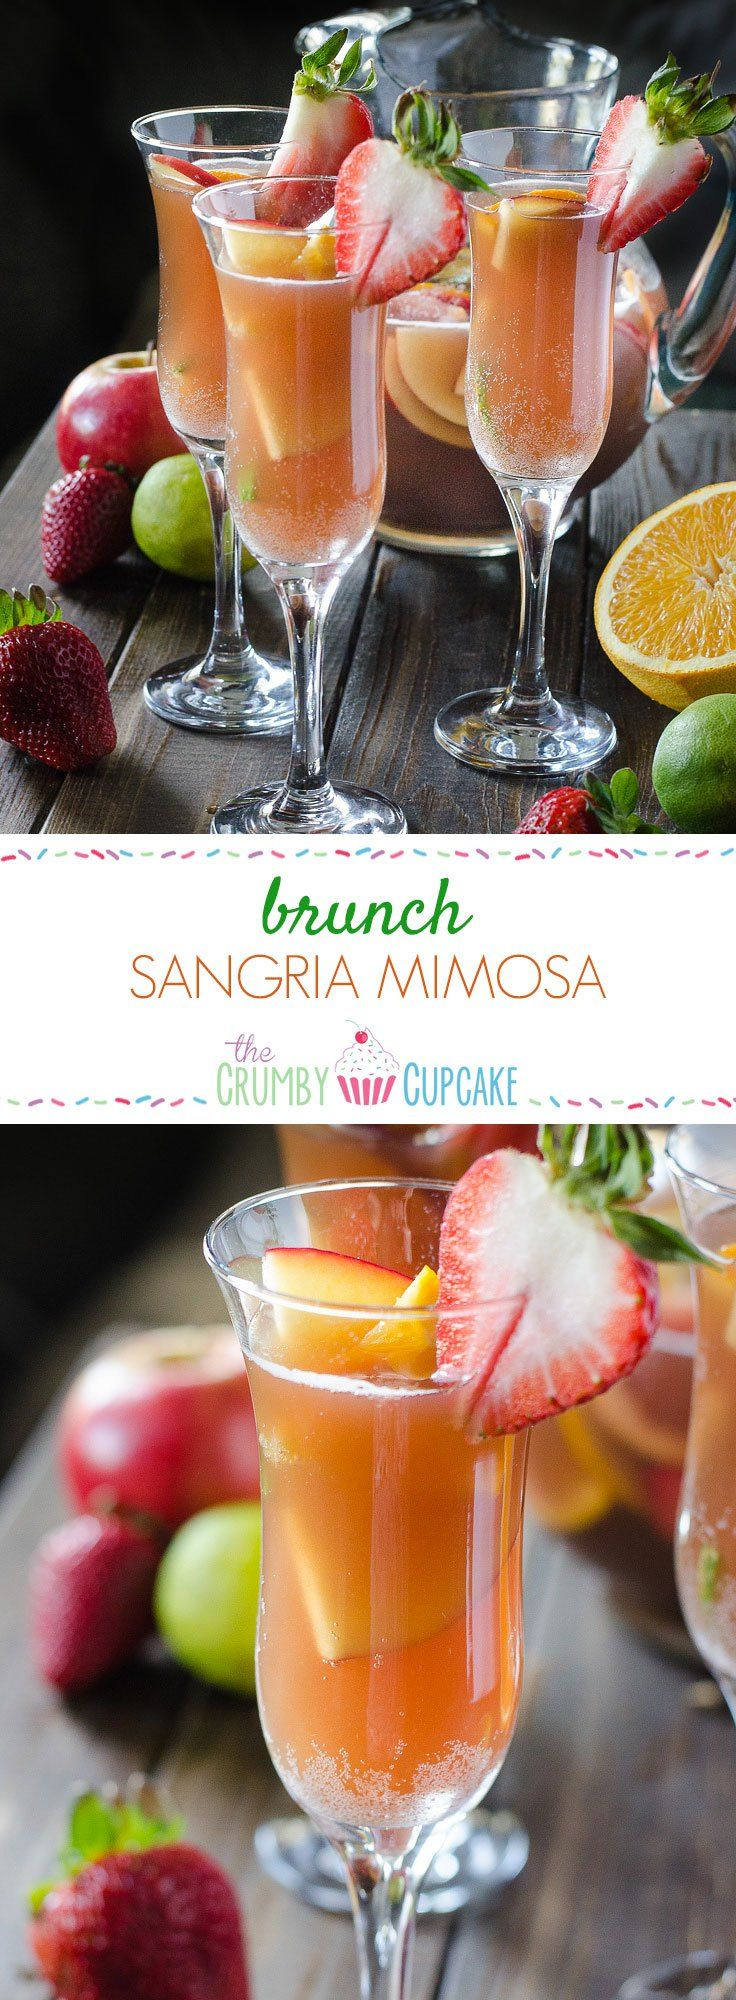 Can't decide between sangria or mimosa for brunch? Have both! Fresh fruit bathed in pineapple juice, champagne, and a little Creme de Cassis makes for a perfect weekend pick-me-up!